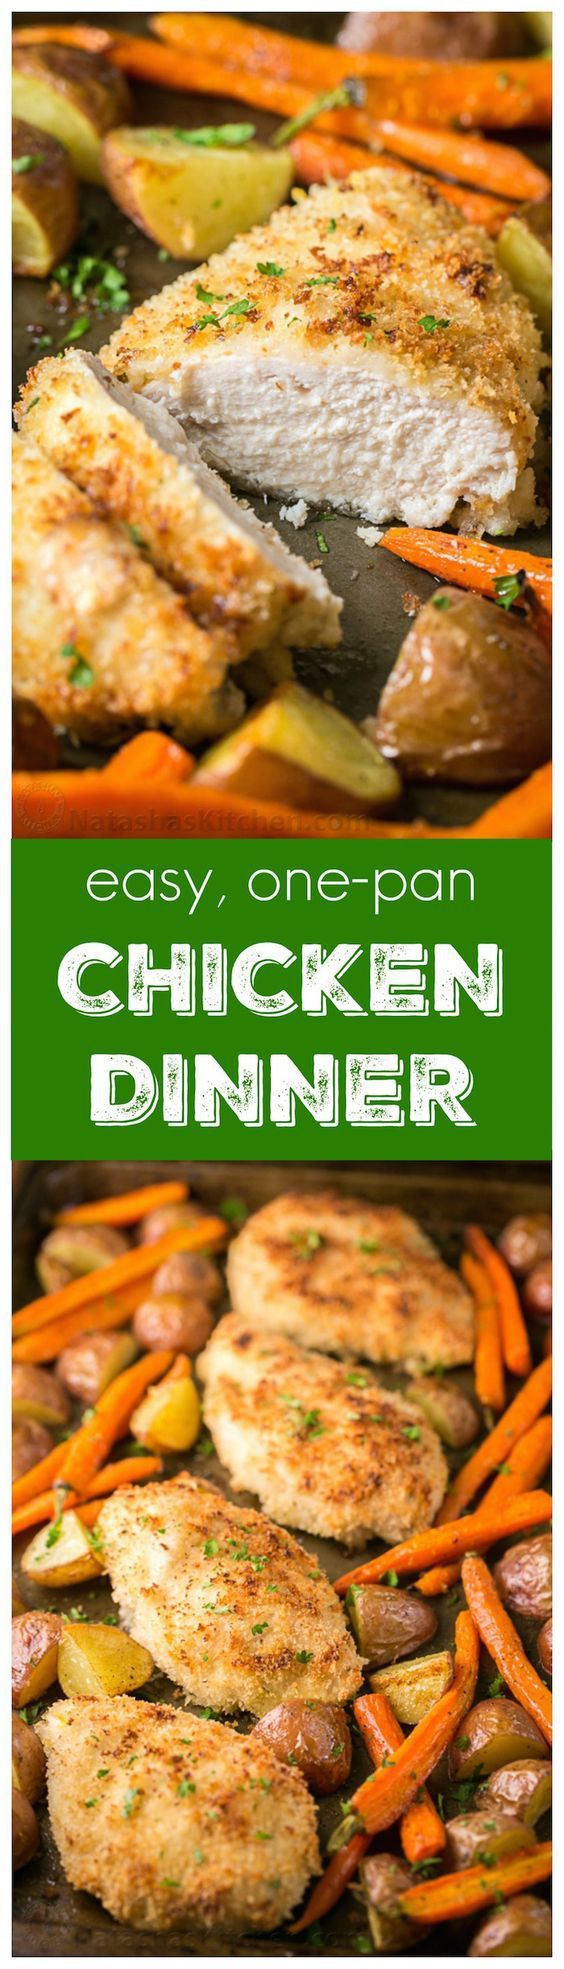 Easy One Sheet Pan Ranch Chicken and Veggies Family Dinner Recipe via Natasha's Kitchen - This one-pan chicken dinner is delicious and family-friendly. It's a one pan meal with just 6 ingredients! Such an easy dinner idea.